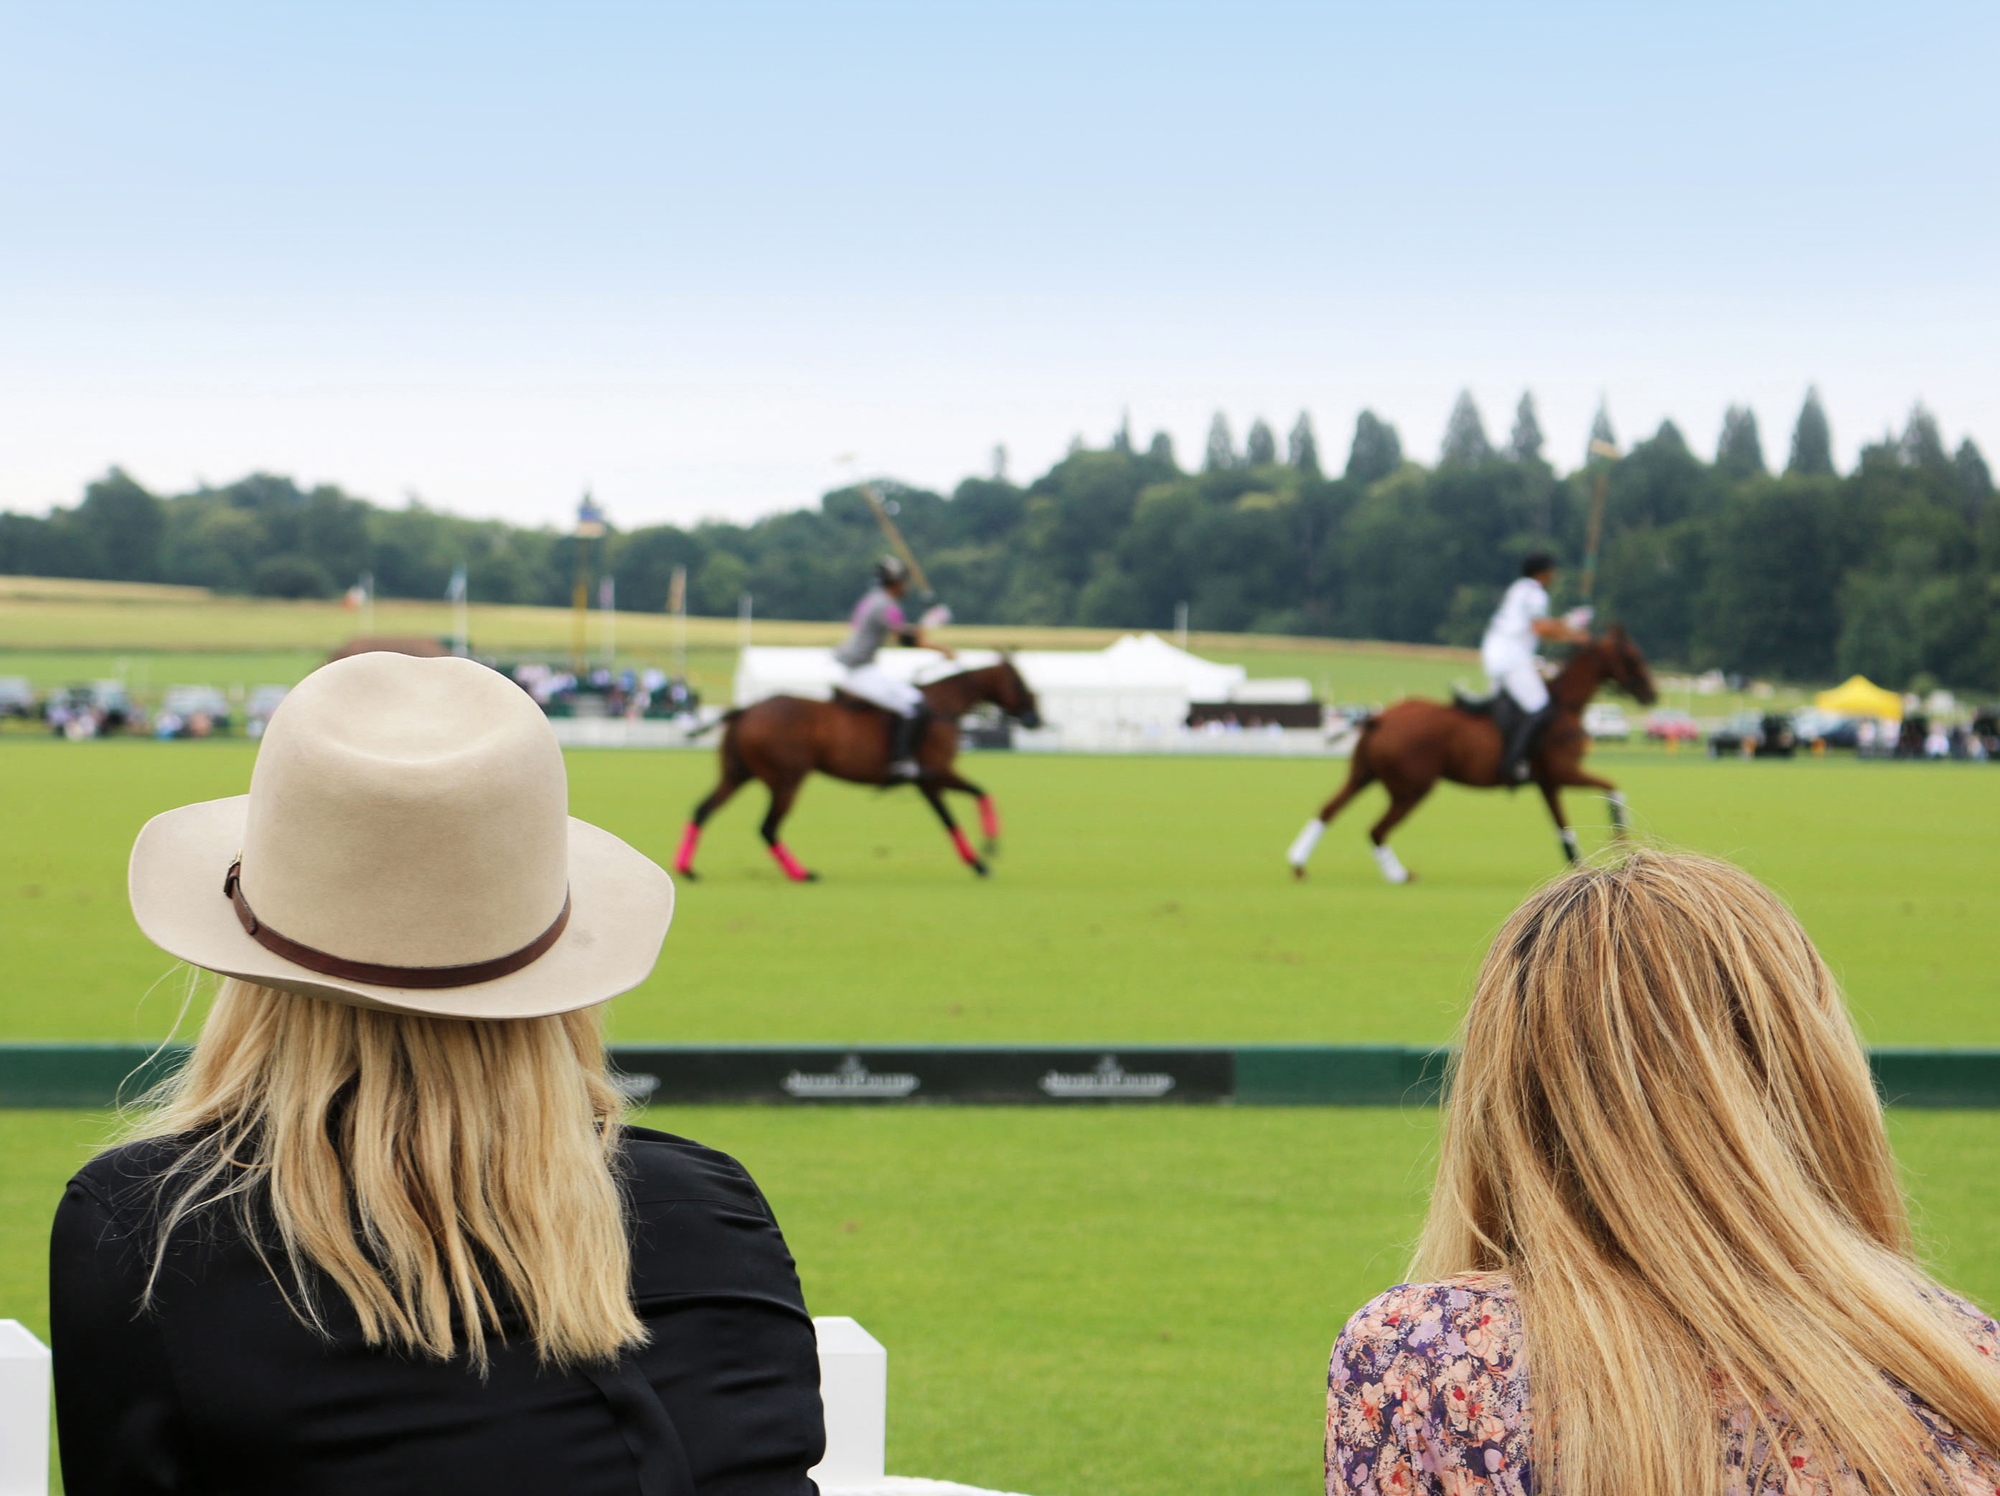 Event review Jaeger-LeCoultre International Gold Cup at Cowdray House polo match english countryside